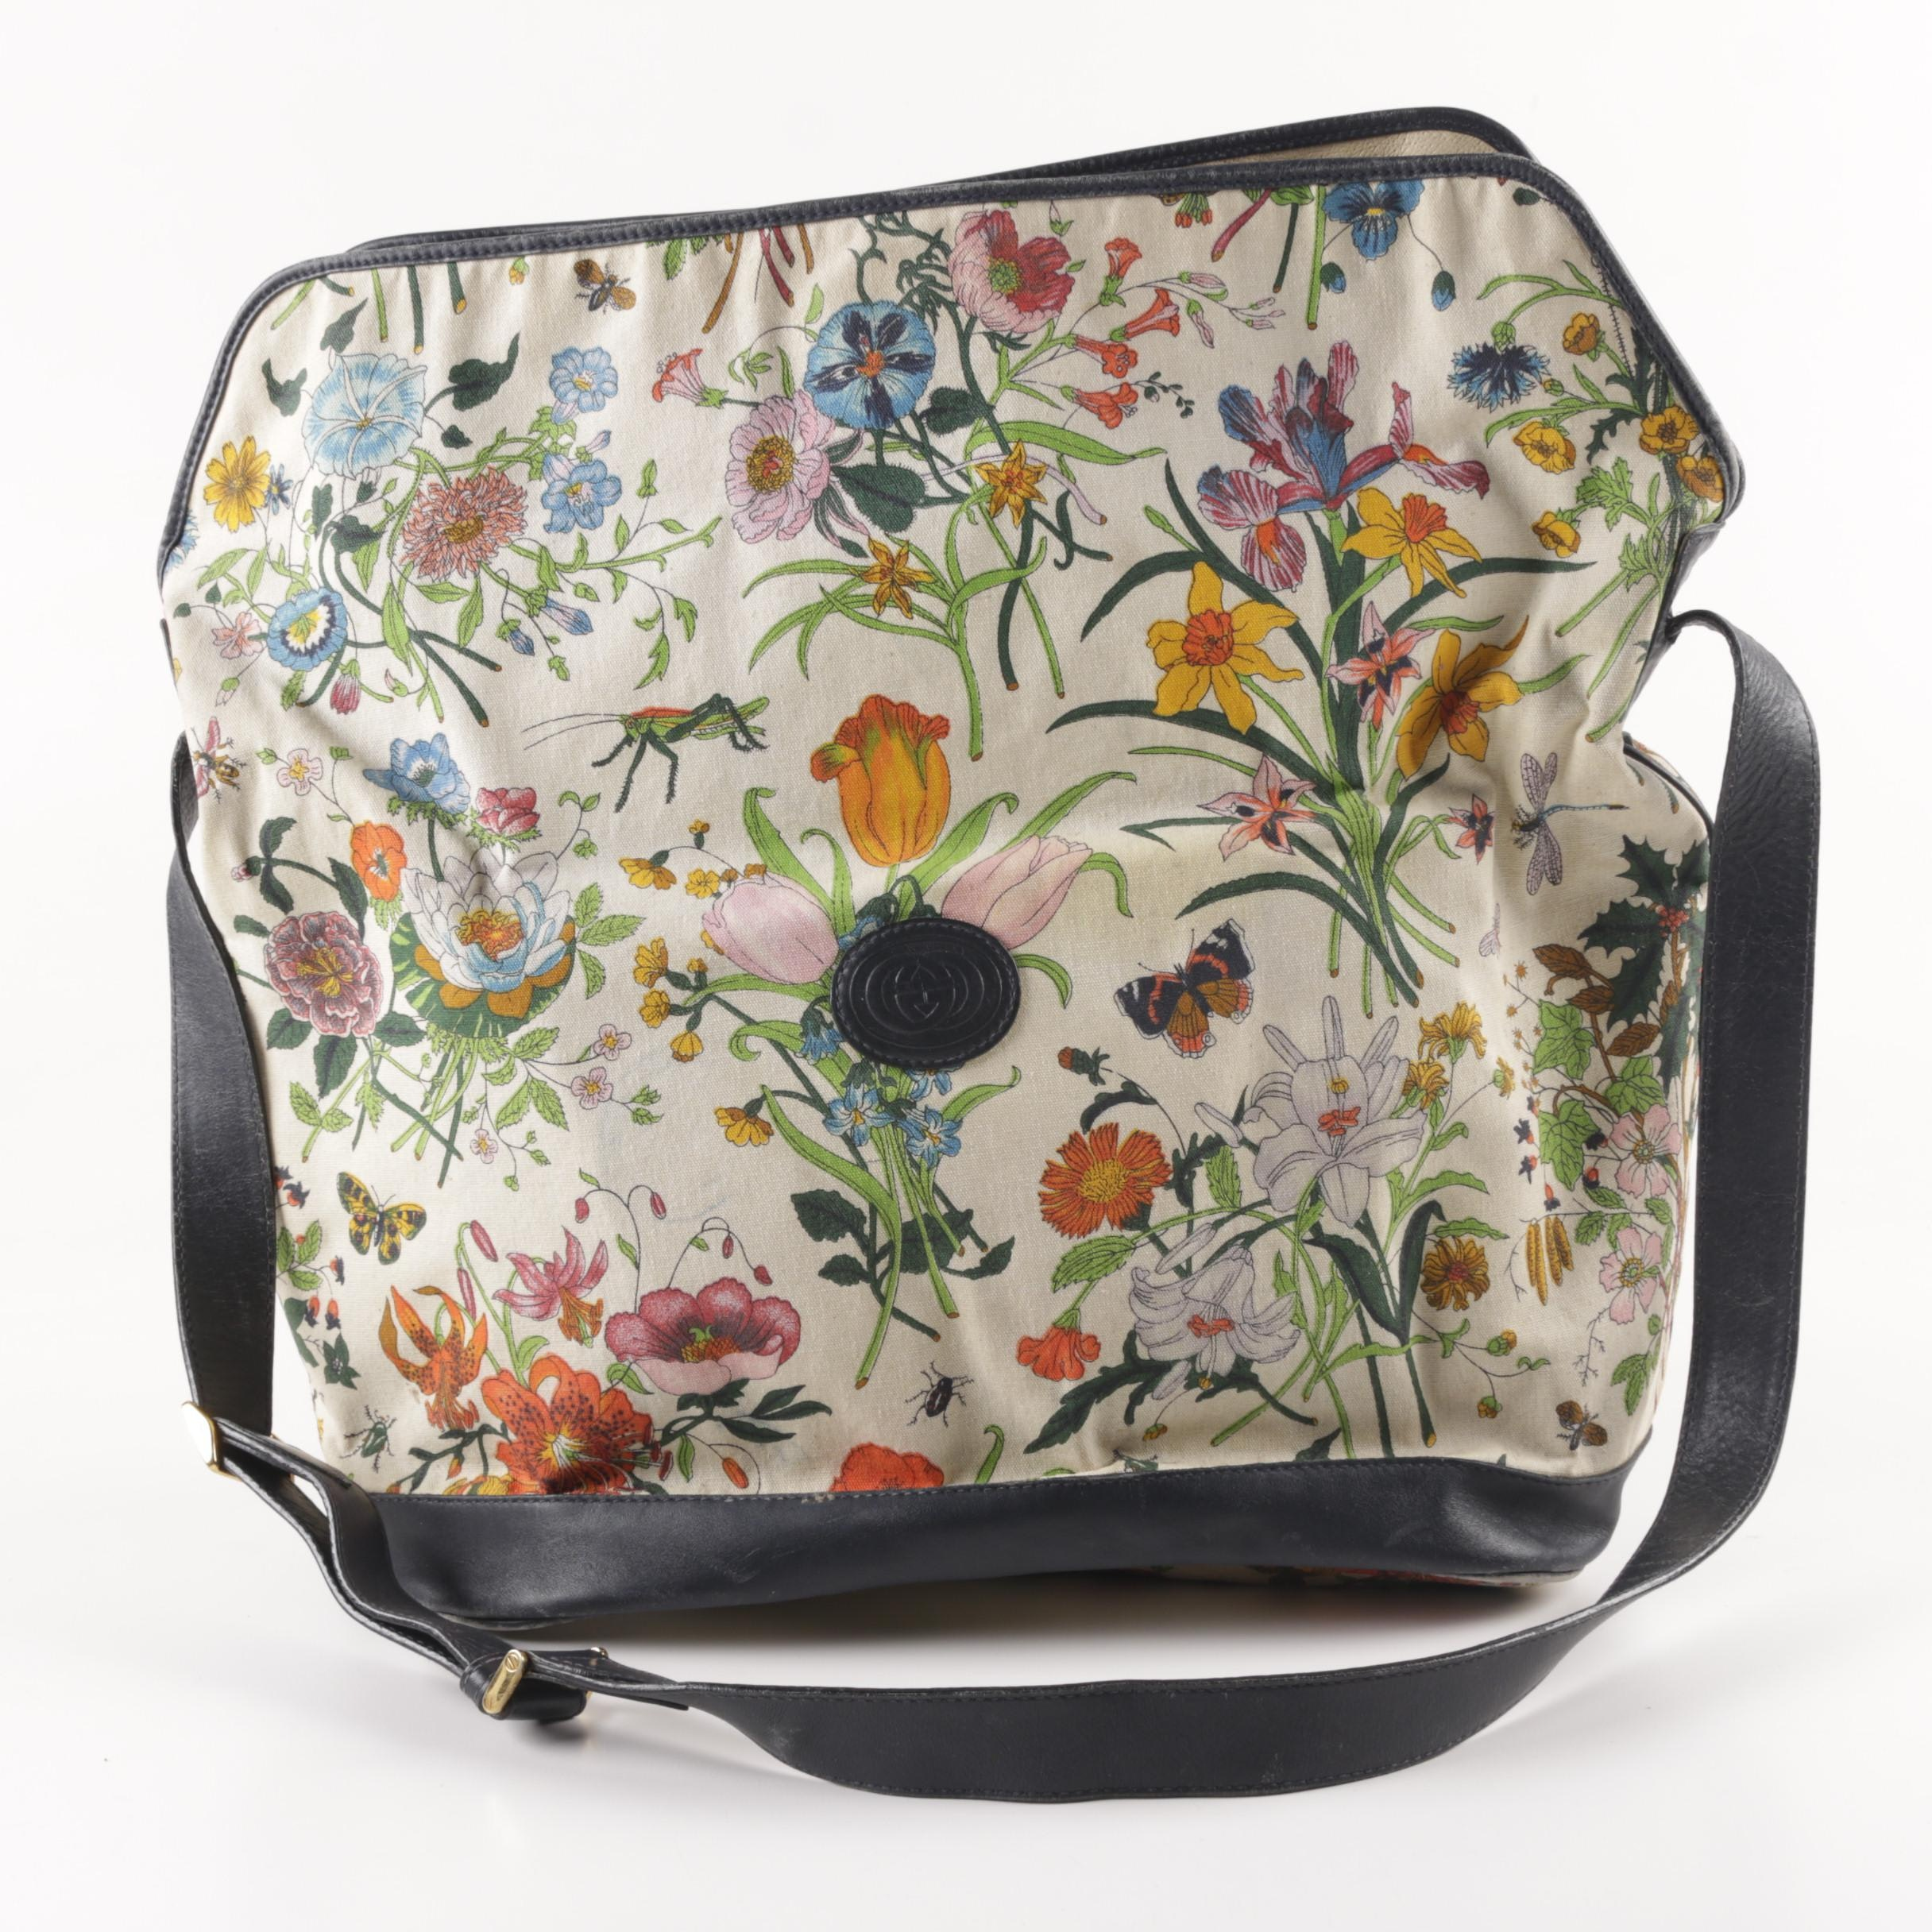 Gucci Canvas and Leather Floral Handbag